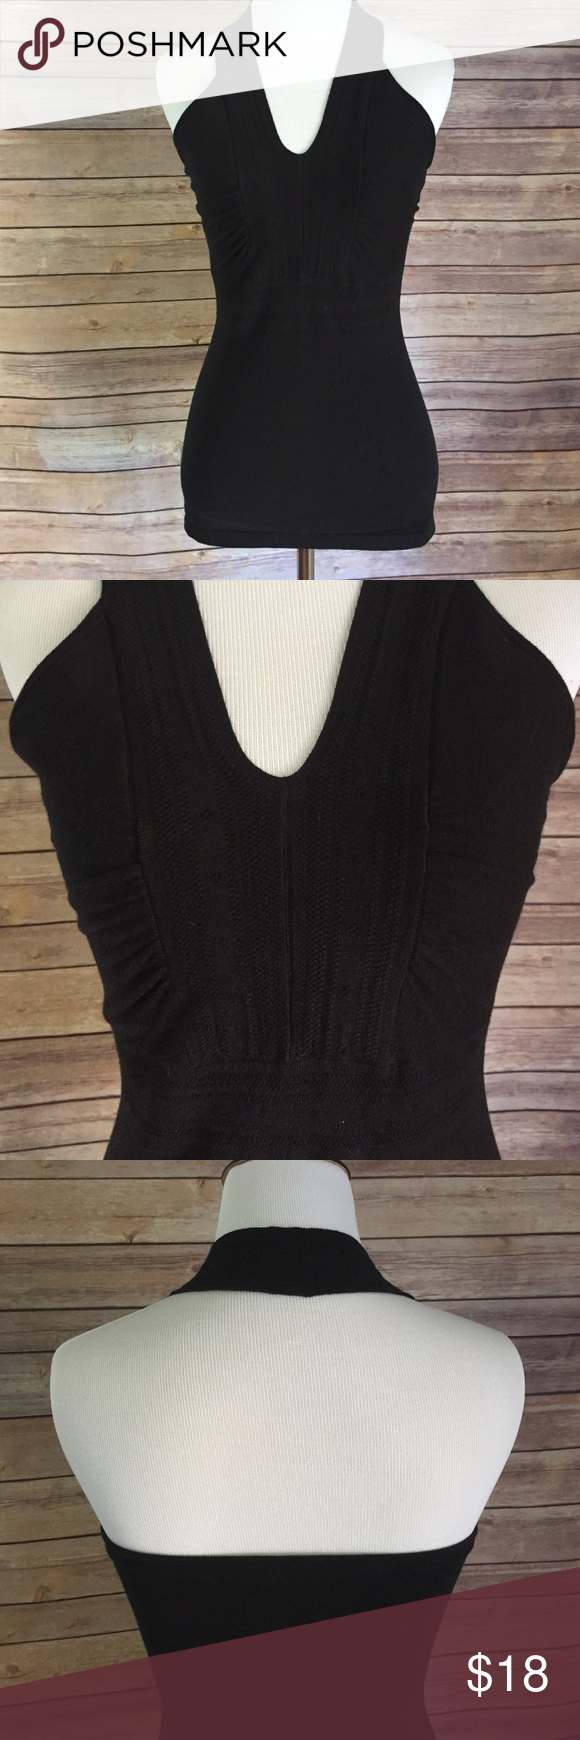 Black Banana Republic Sweater | Summer sweaters, Banana republic ...